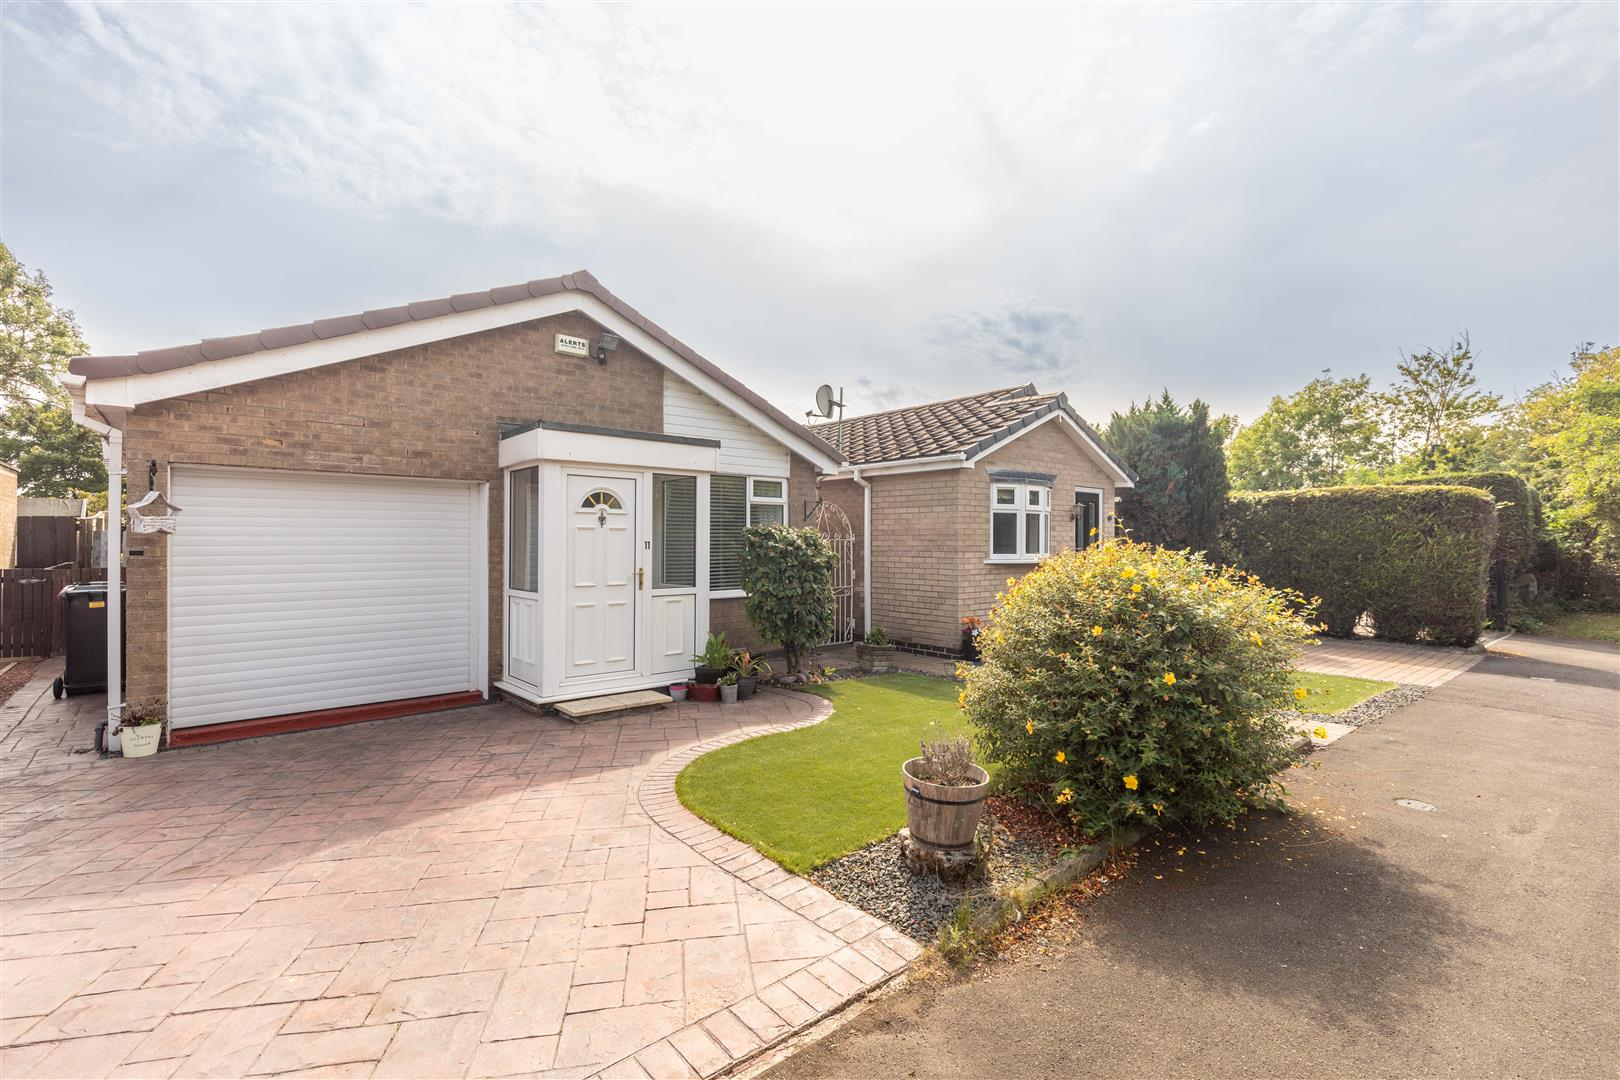 2 bed detached bungalow for sale in Newcastle Upon Tyne, NE13 7HX, NE13